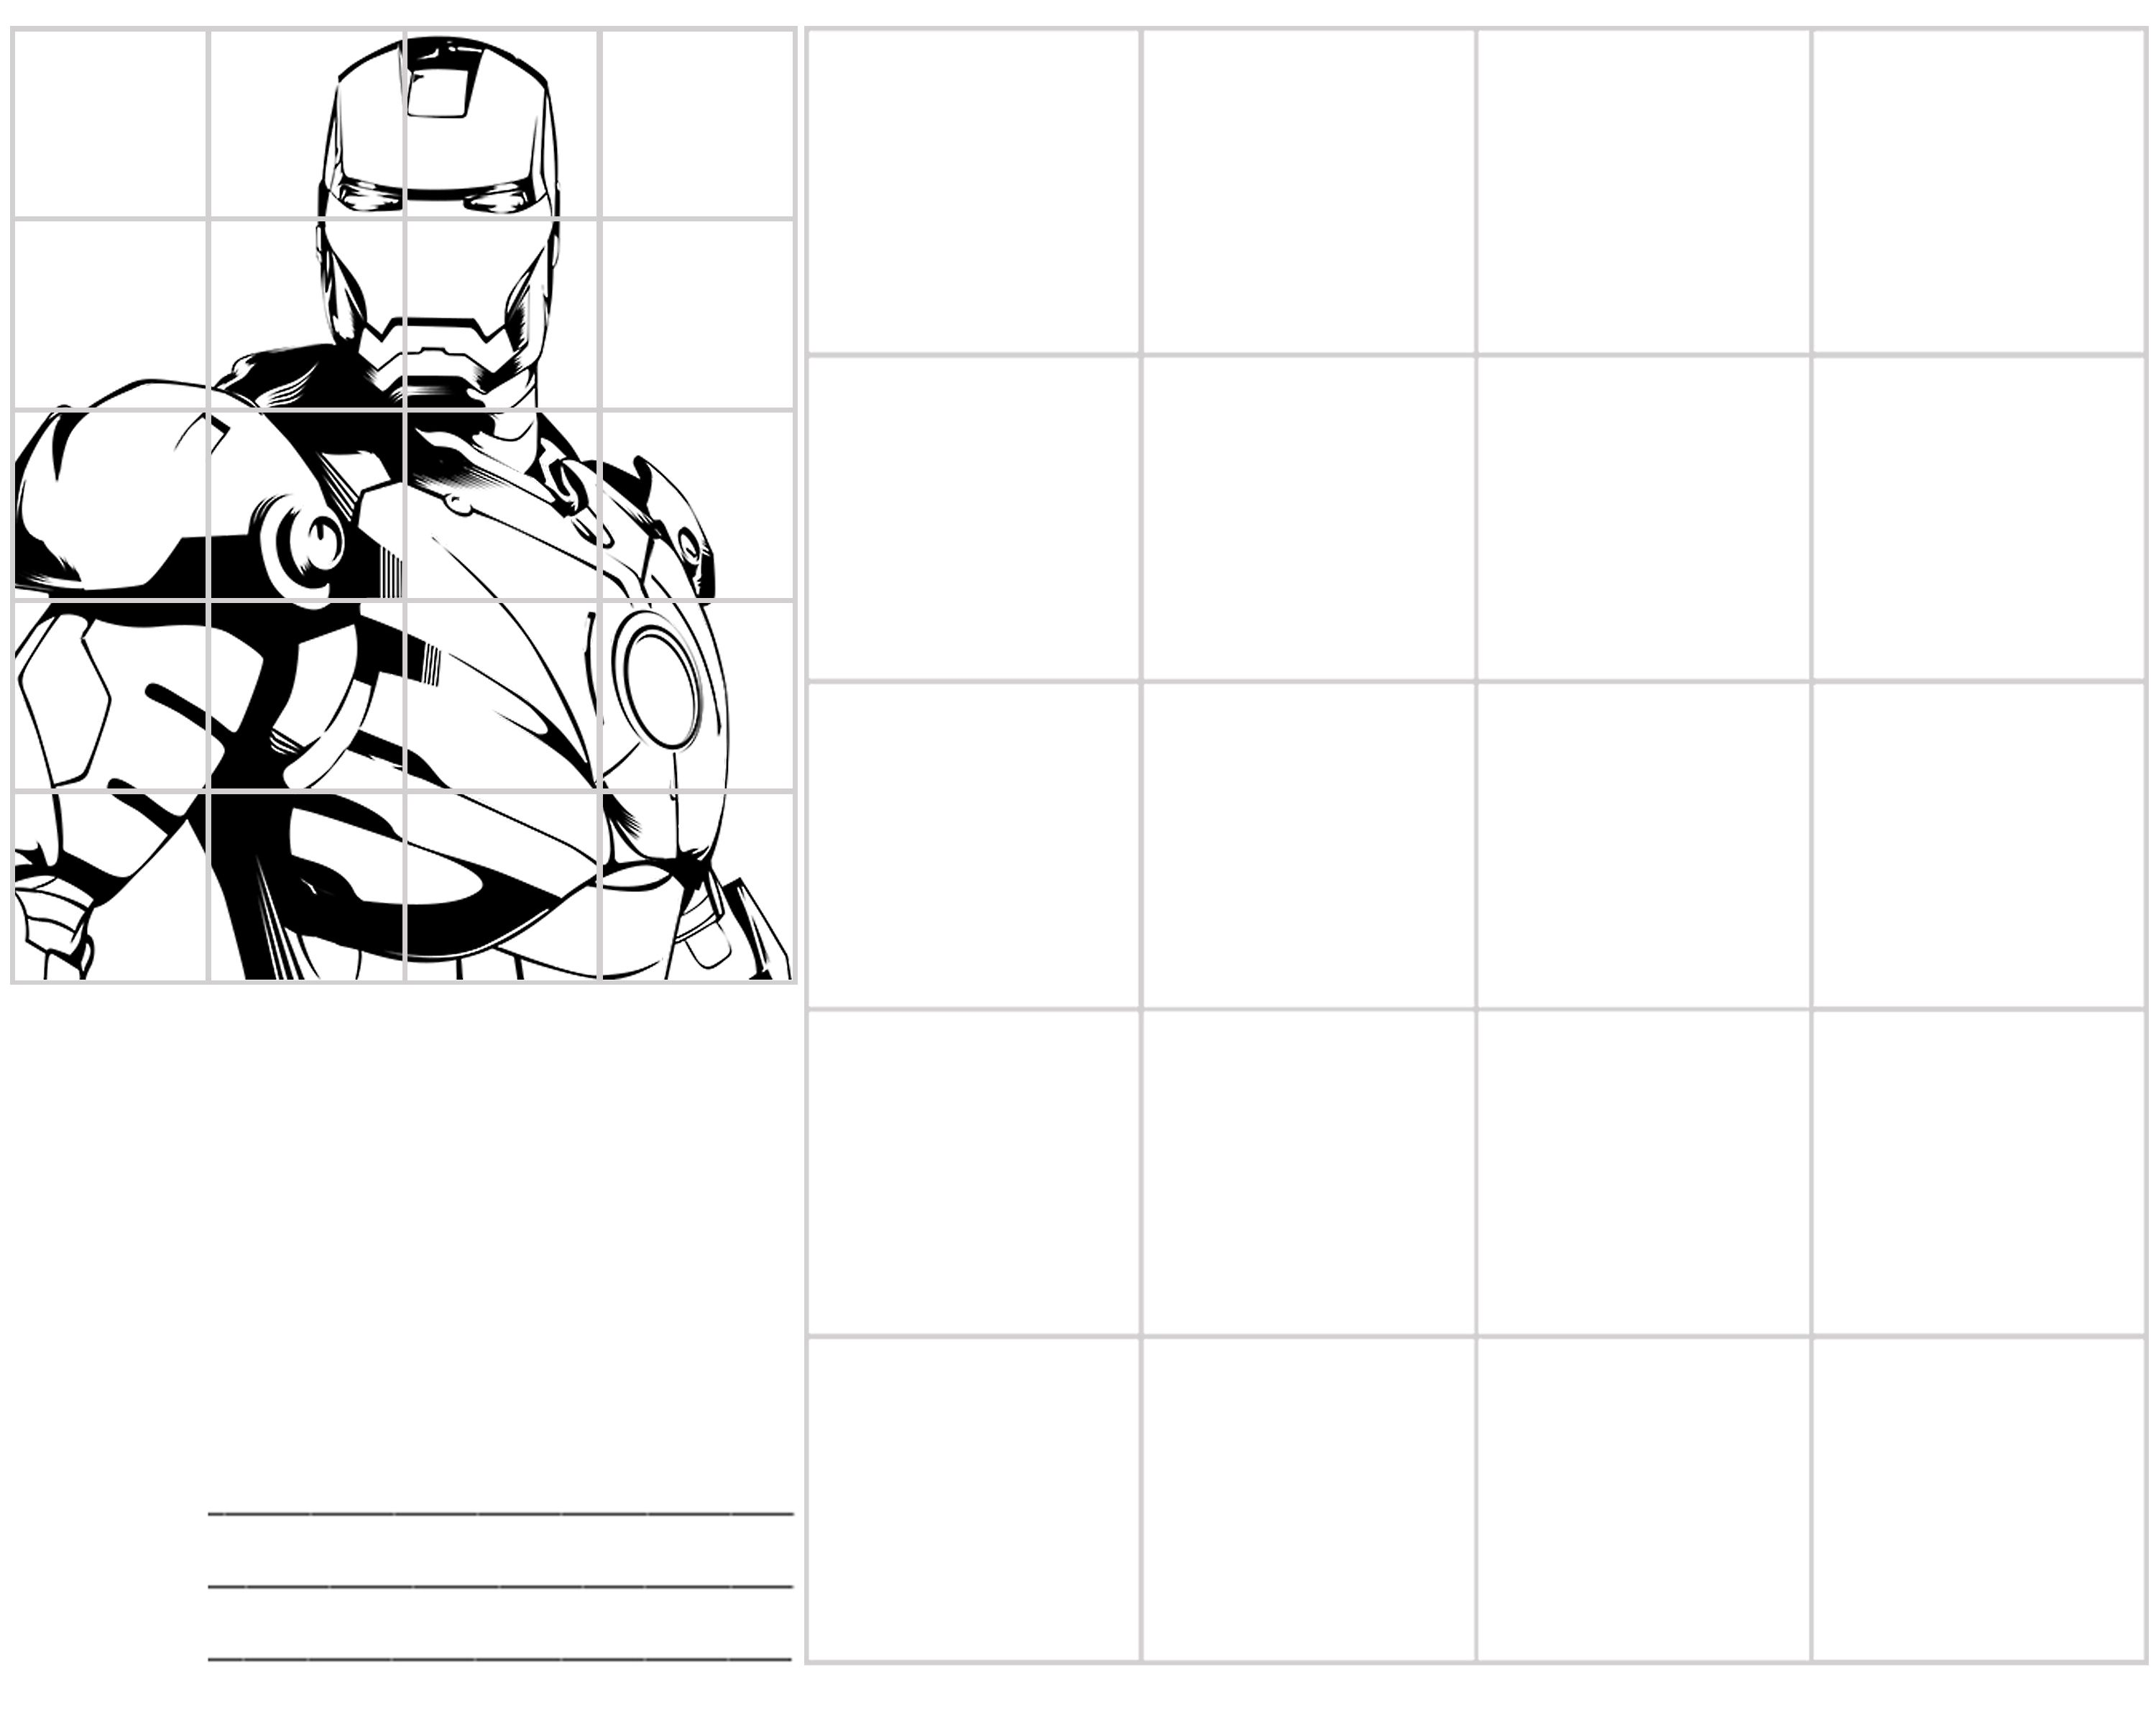 Art Grid Worksheet Kid Ironman Suit